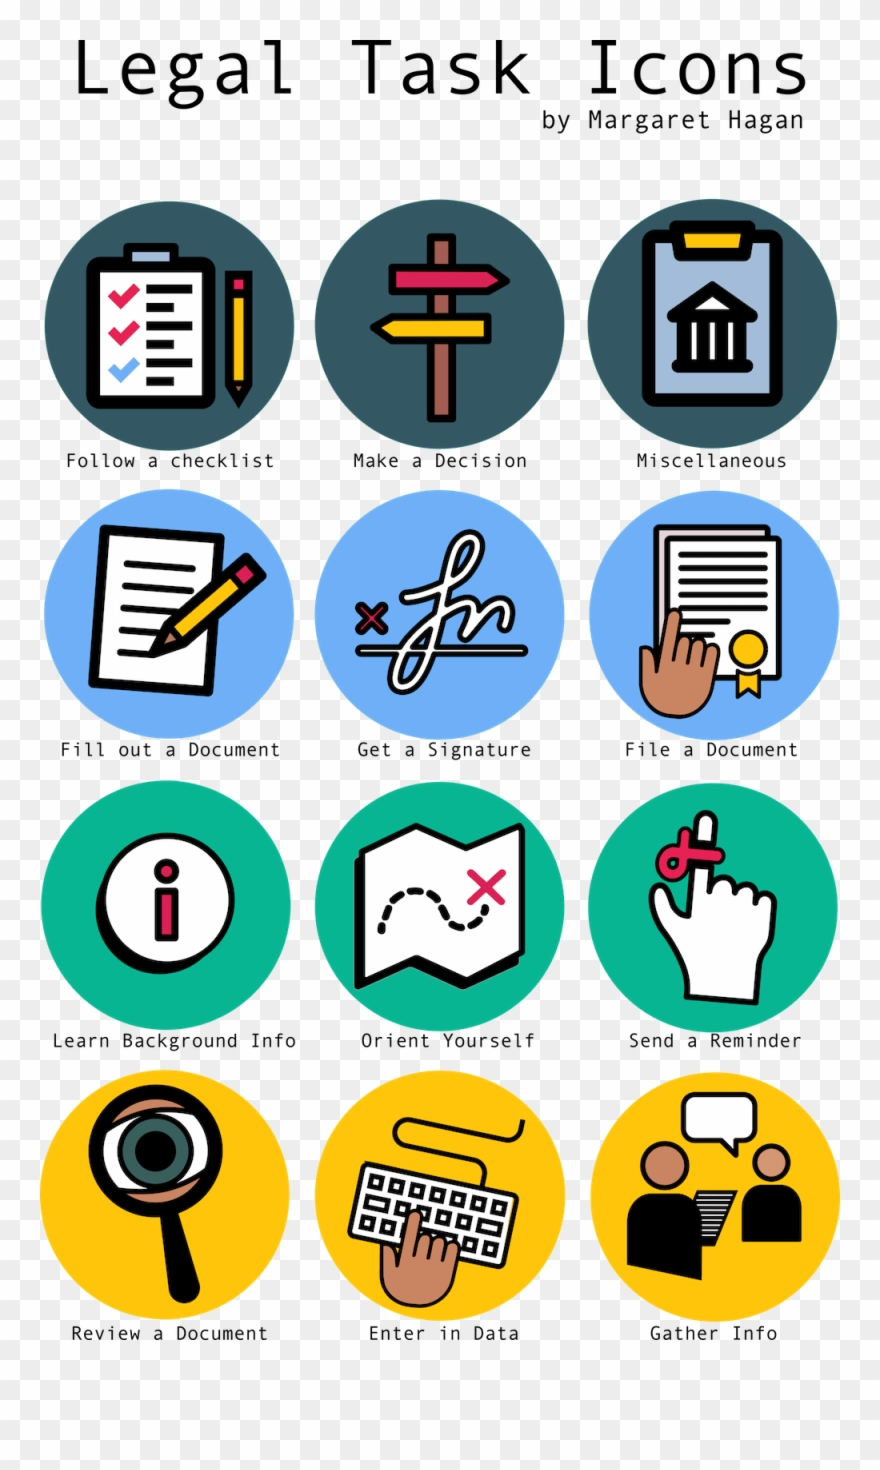 Legal Icons For Tasks.